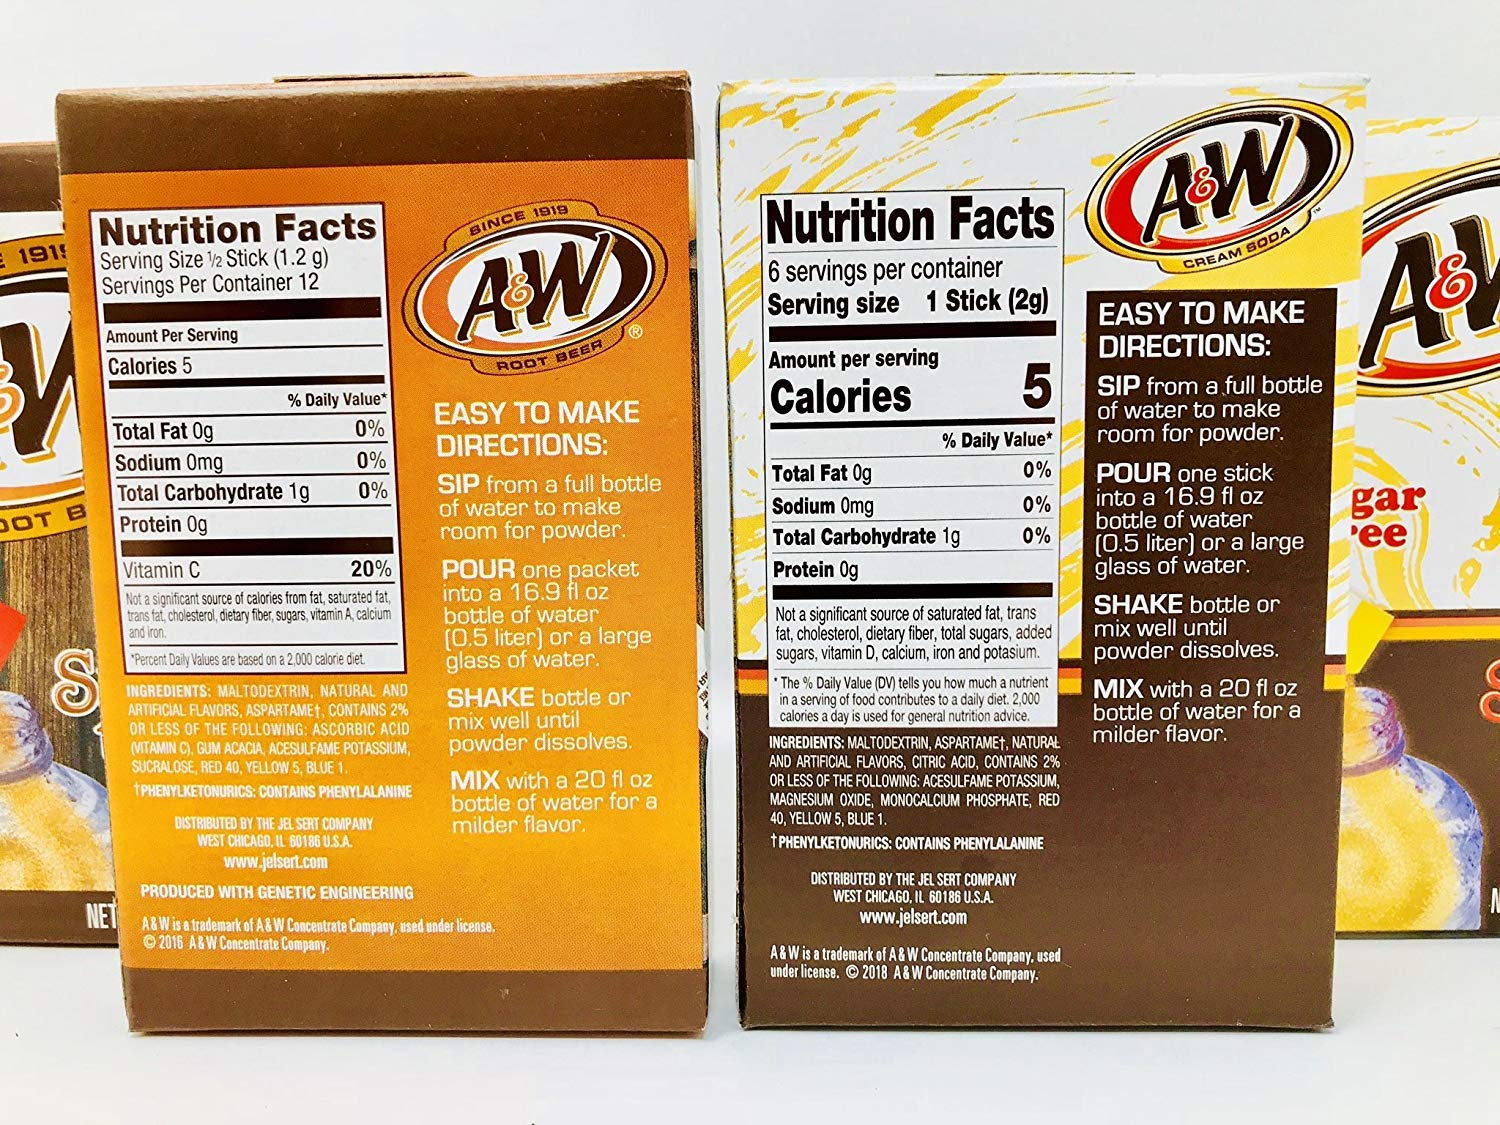 Amazon.com : A&W Root Beer + A&W Cream Soda Drink Mix Singles to Go! Variety Pack Bundle - 3 Boxes w/6 pouches each of Each Flavor! : Grocery & Gourmet Food